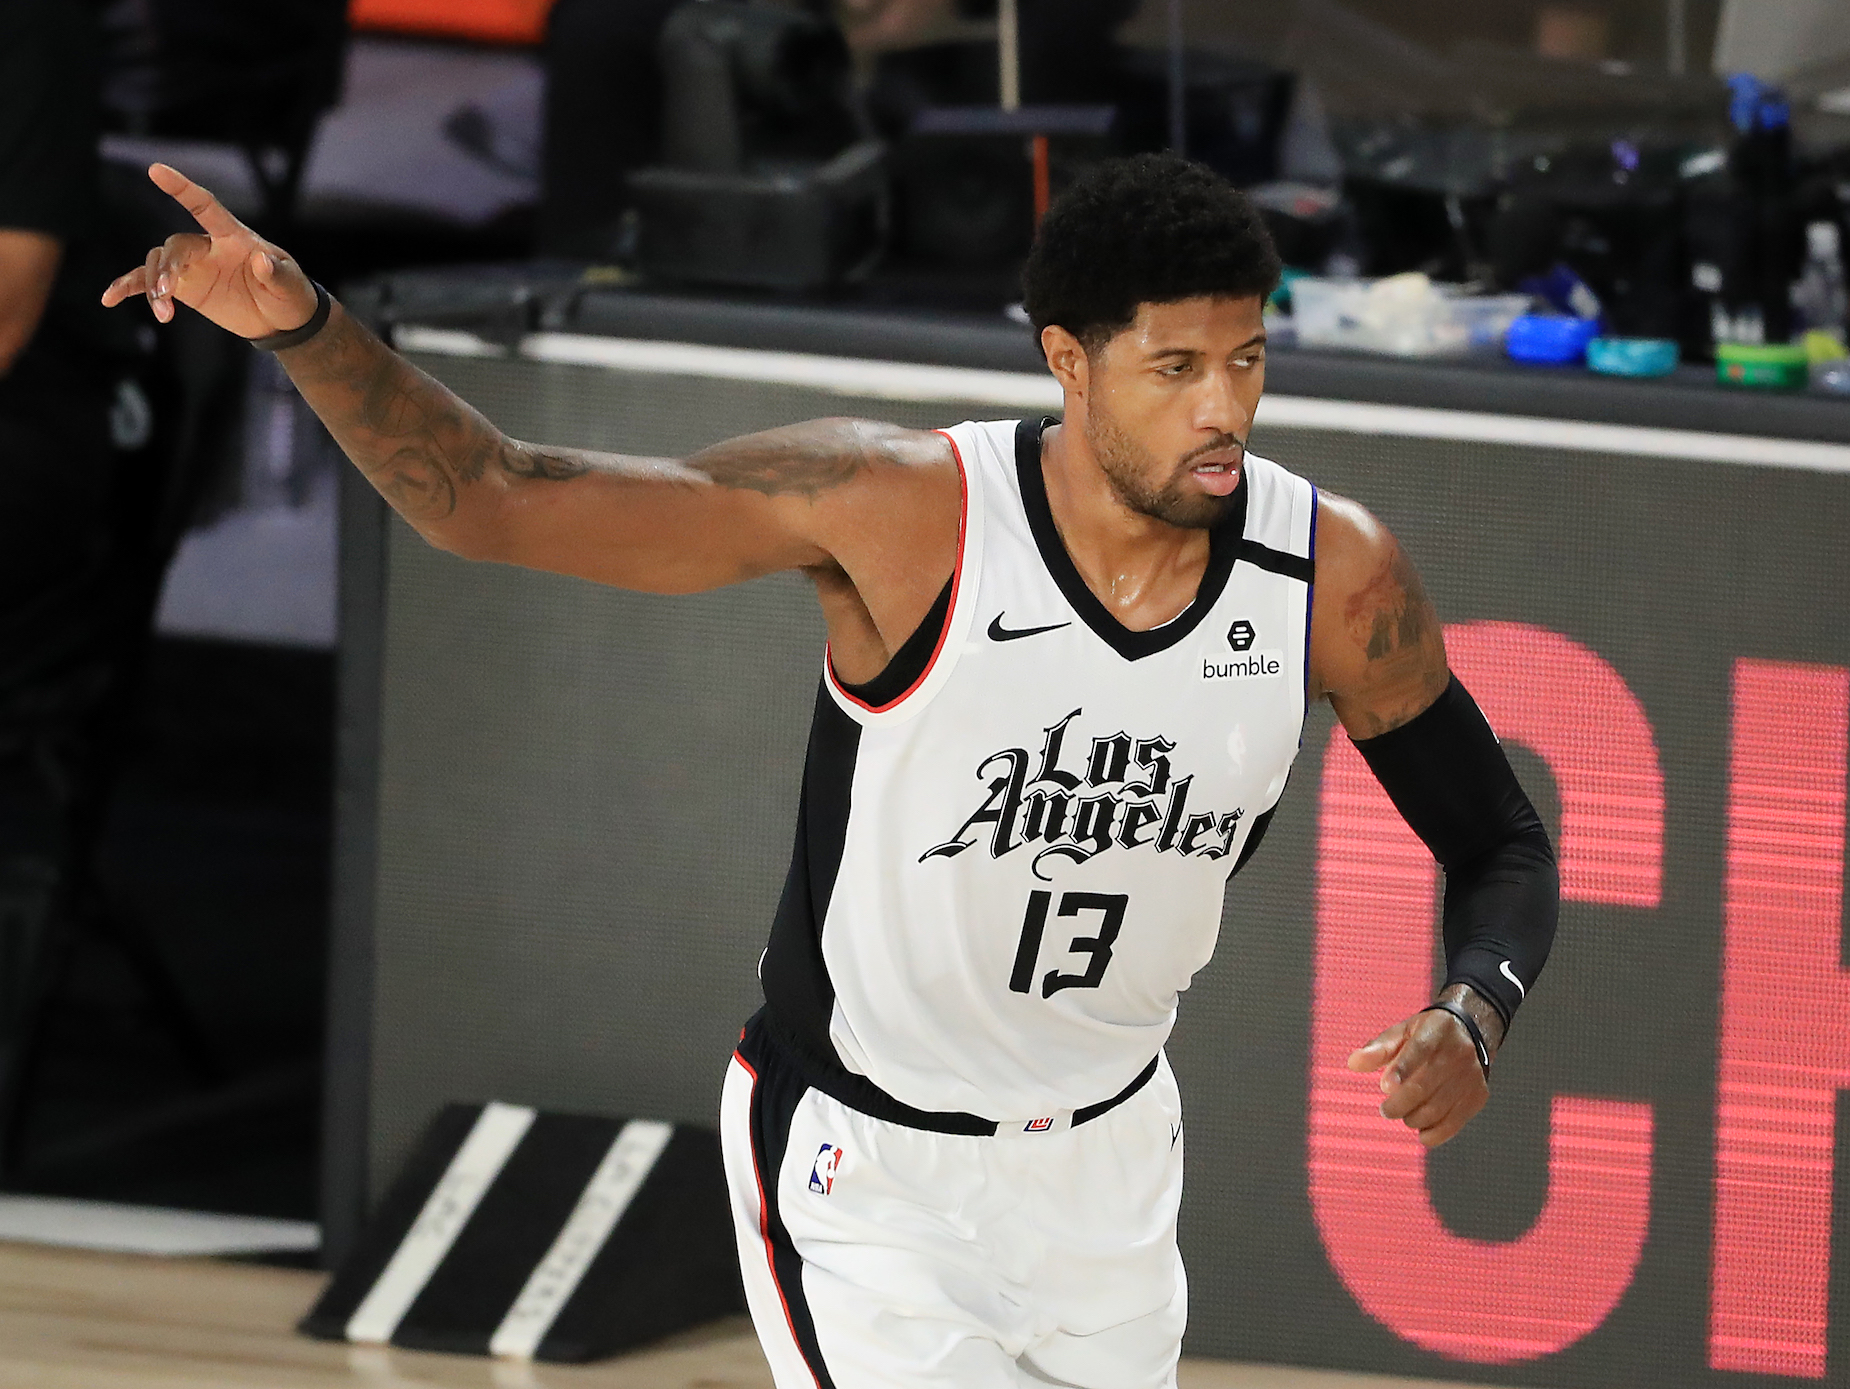 After the Los Angeles Clippers' elimination, Paul George believes that the team needs to simply spend more time together.